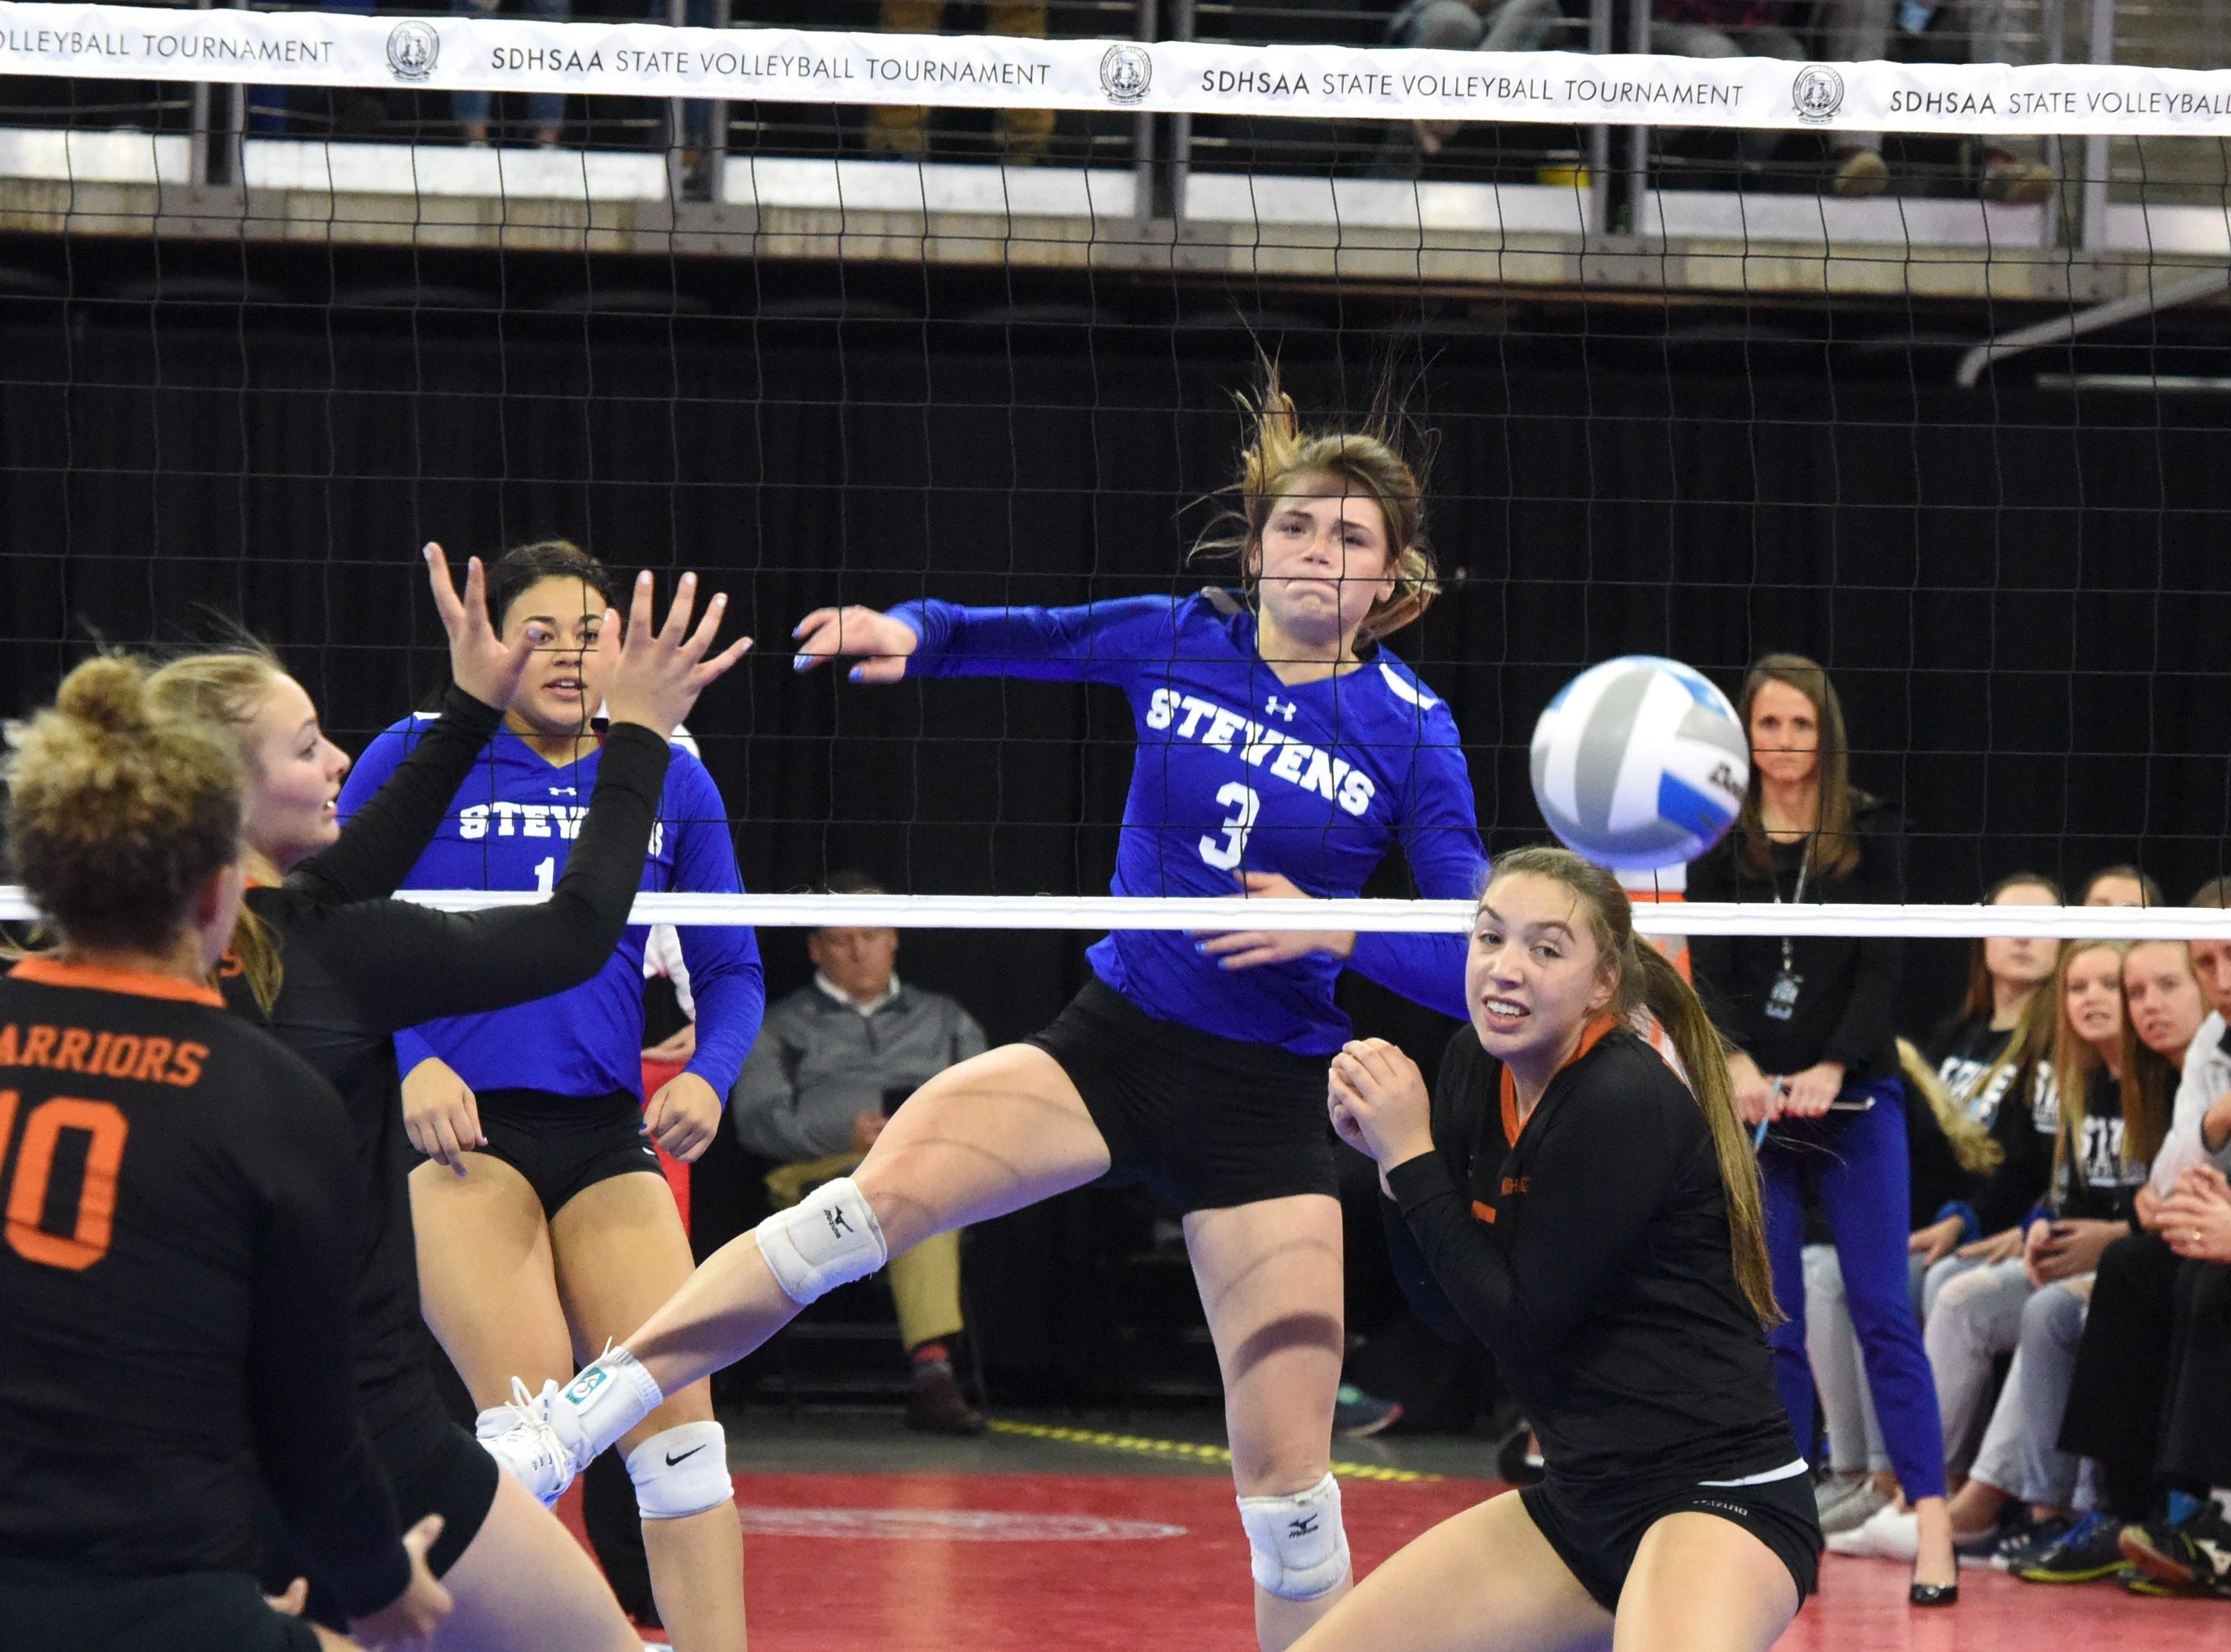 Rapid City's Elizabeth Schaefer (3) spikes the ball during a match against Washington, Saturday, Nov. 17, 2018, at the Denny Sanford Premier Center in Sioux Falls, S.D.